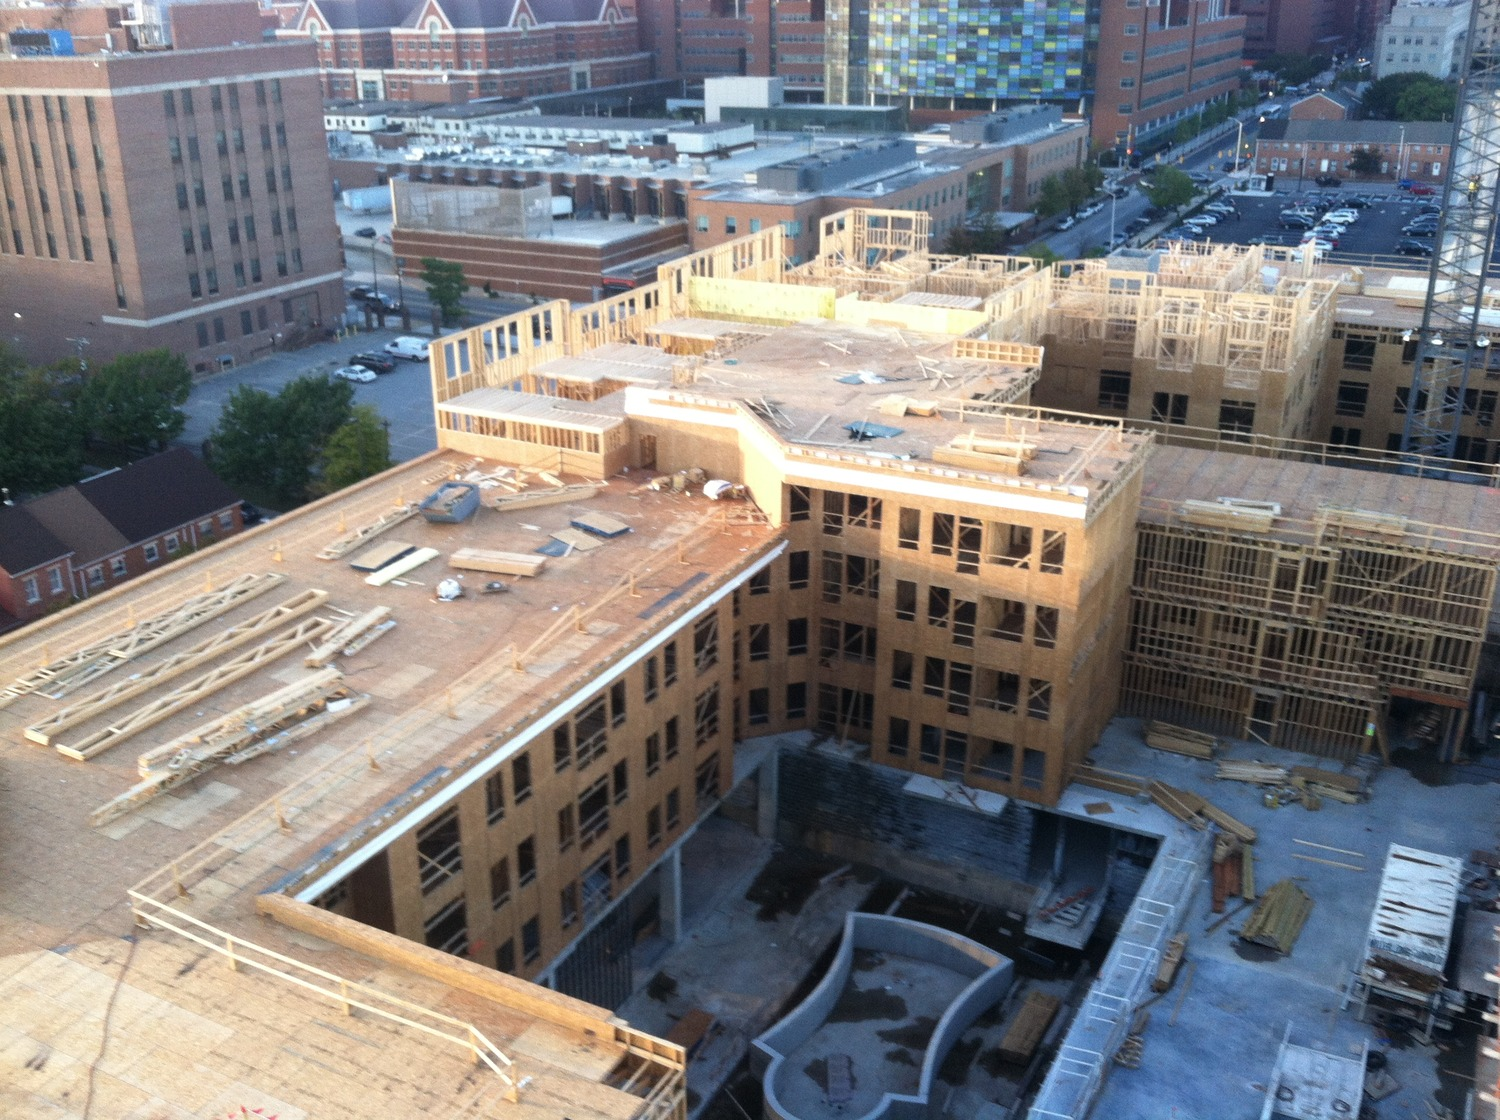 CBG builds Jefferson Square at Washington Hill, a 304-Unit Mixed-Use Apartment Community with Cast-in-Place Parking Garage in Baltimore, MD - Image #6